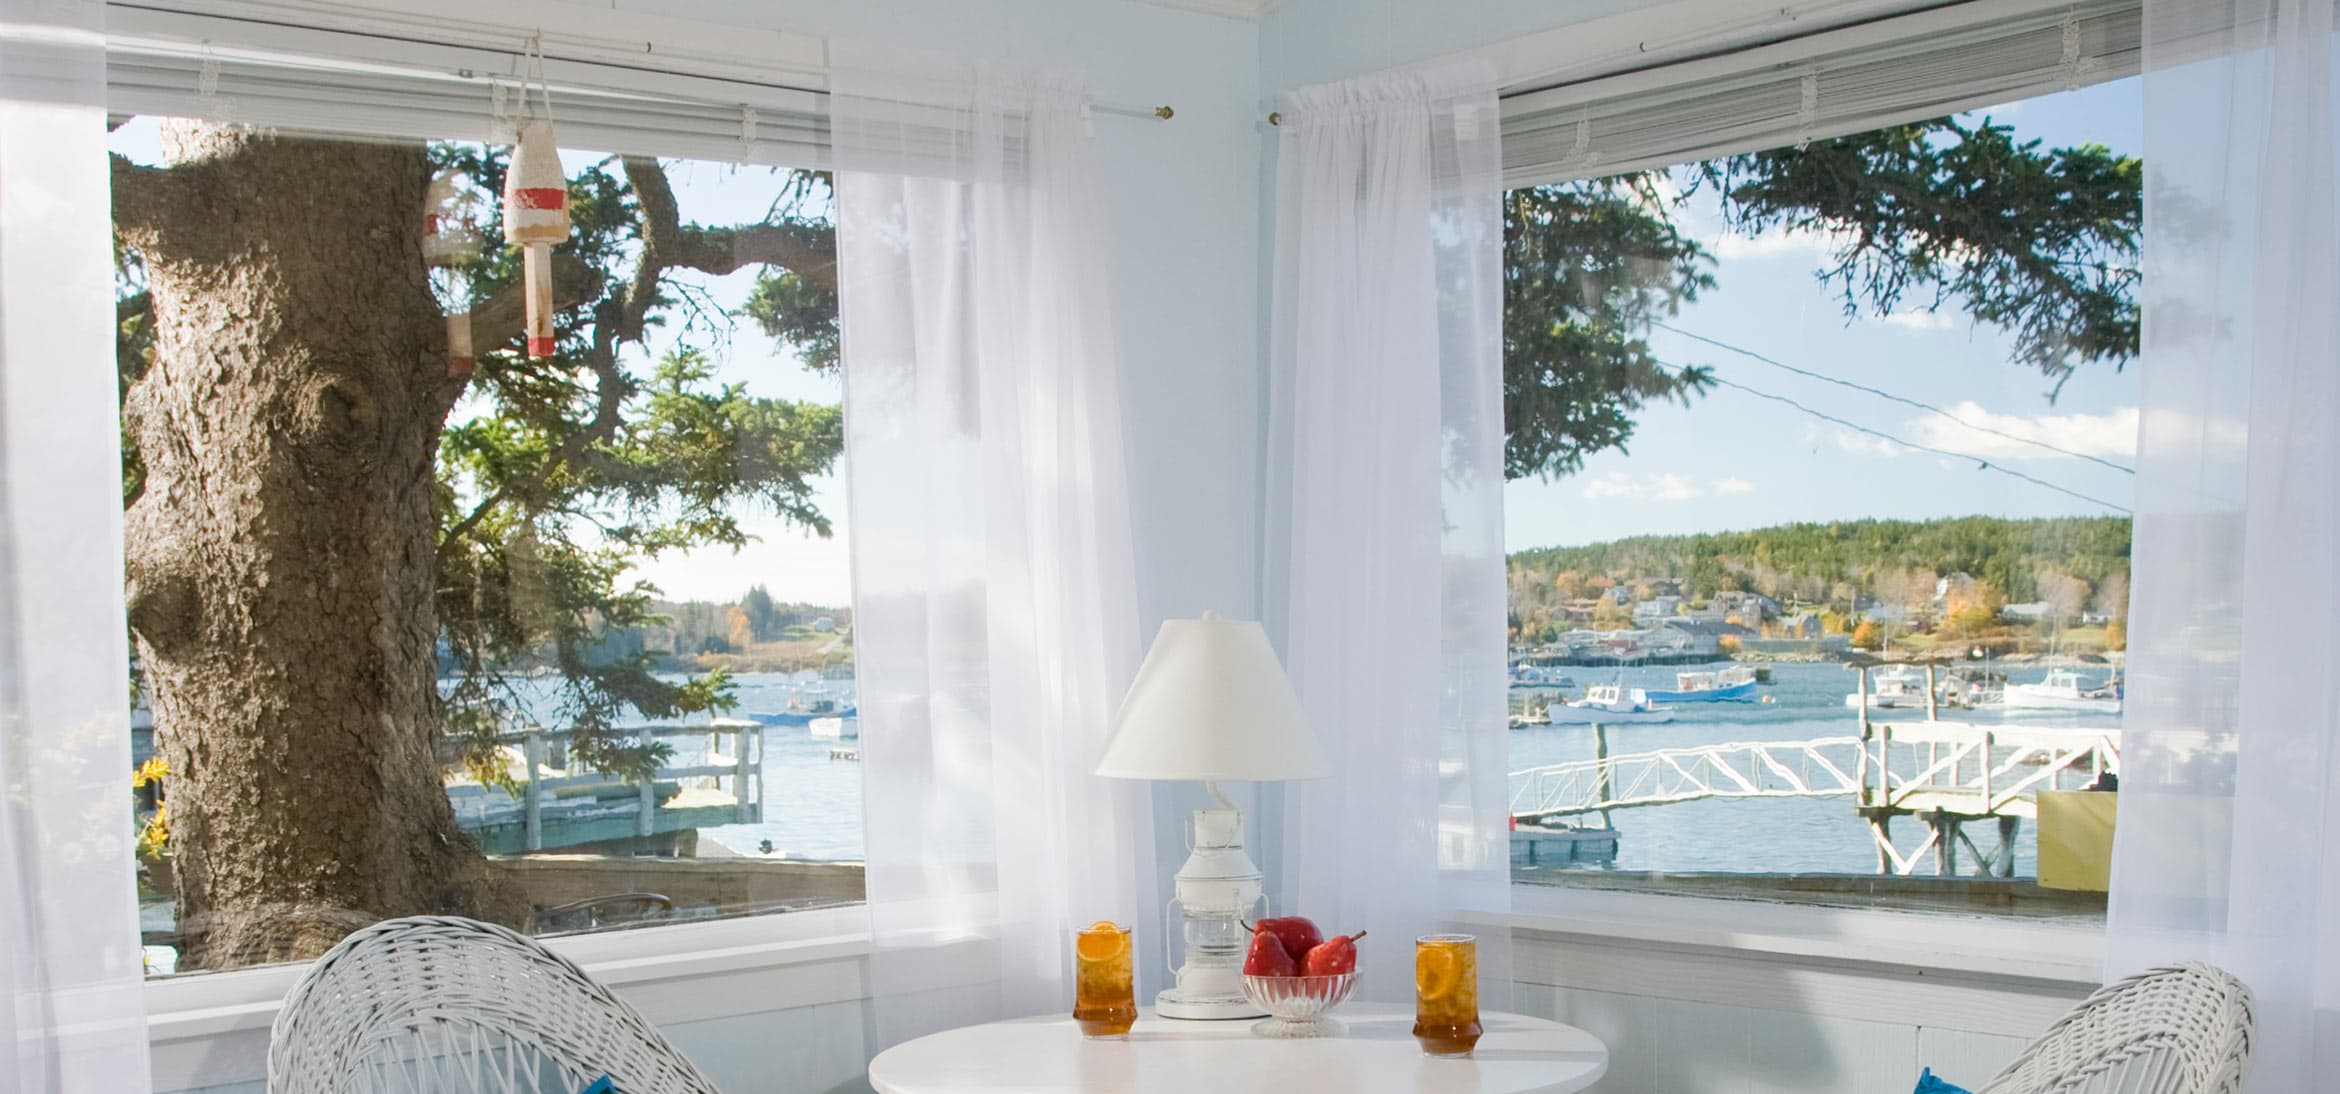 Window view in Deck House